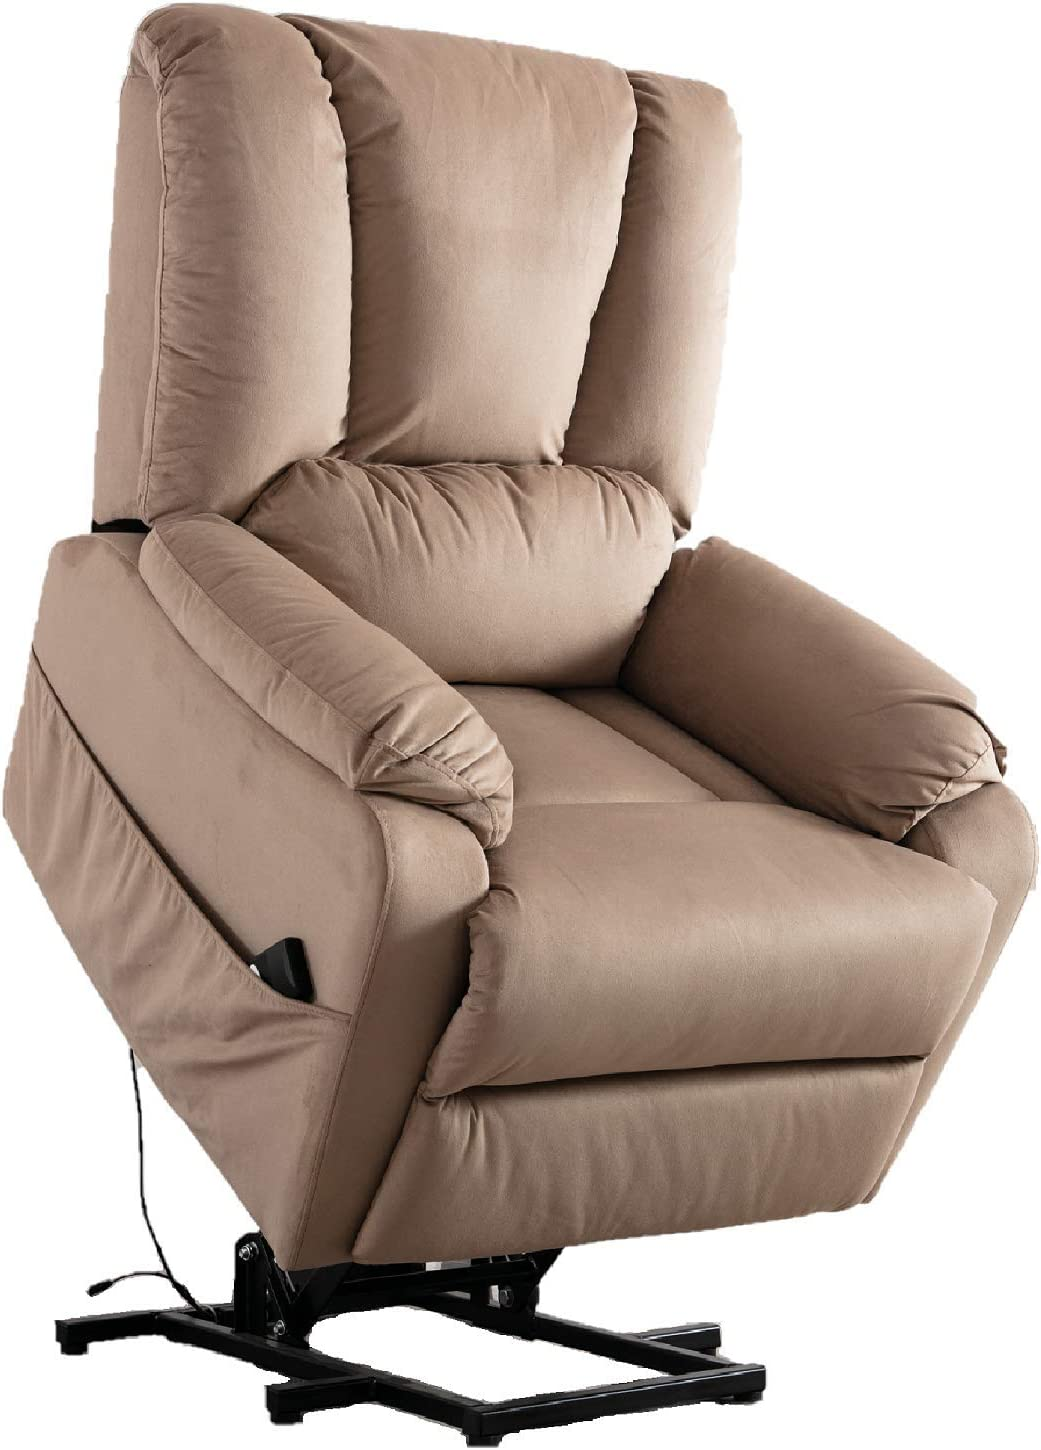 Merax Power Lift Recliner Chair Lazy Sofa for Elderly, Heavy-Duty Fuction with Remote Control, Office or Living Room, Mocha